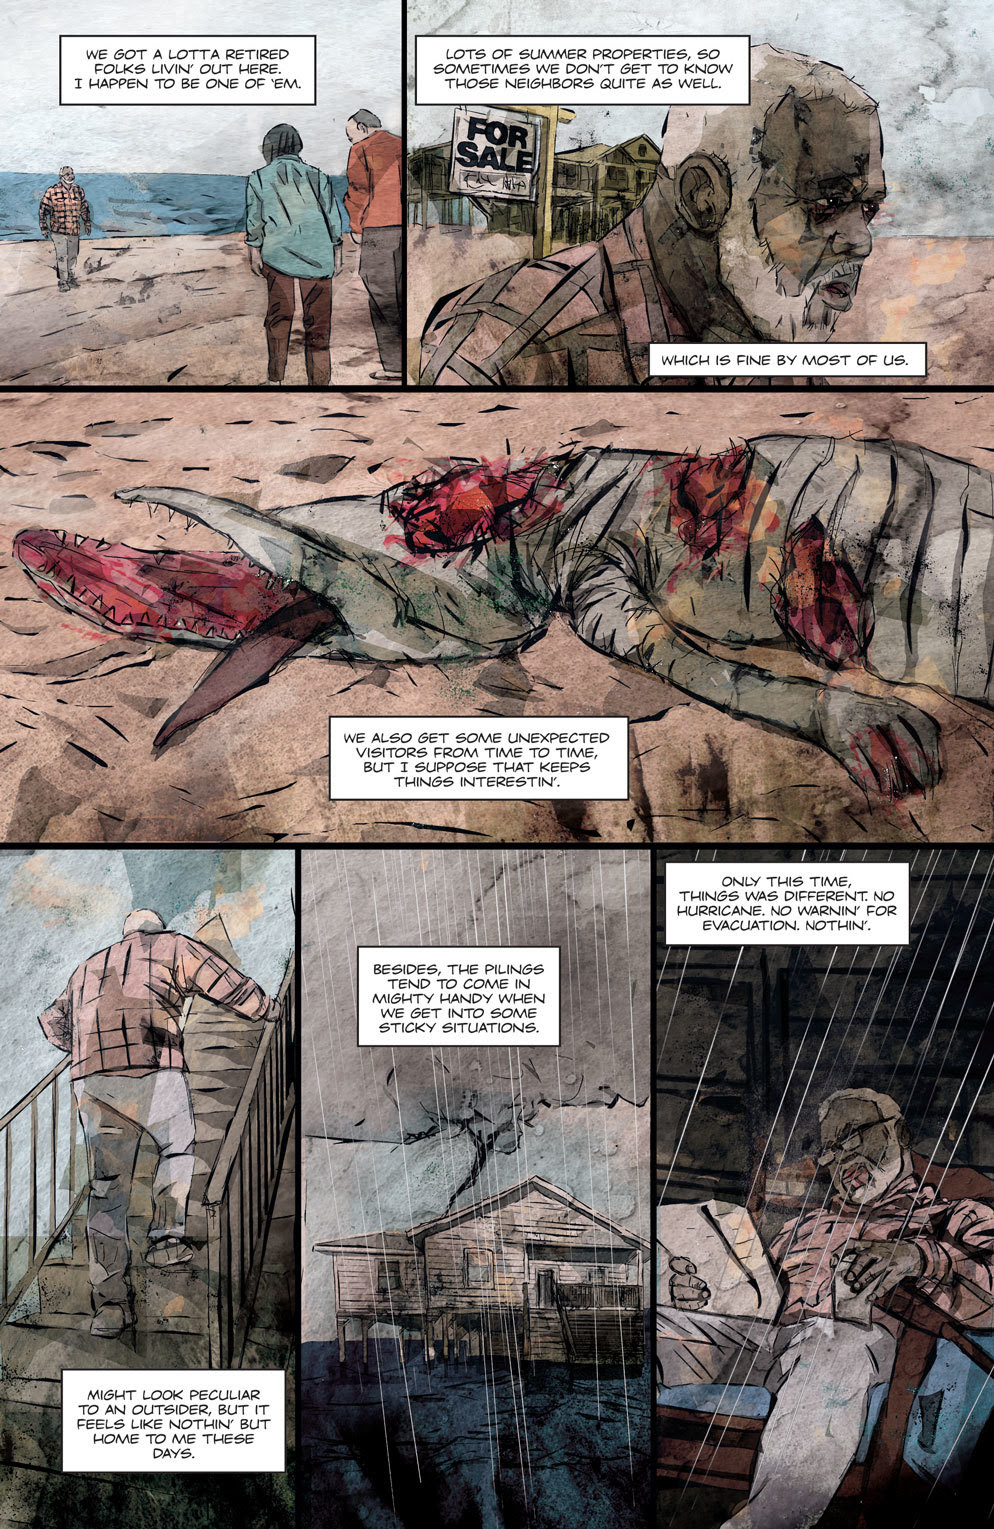 Hag 3 - Official Preview Pages from HAG #1 from American Gothic Press